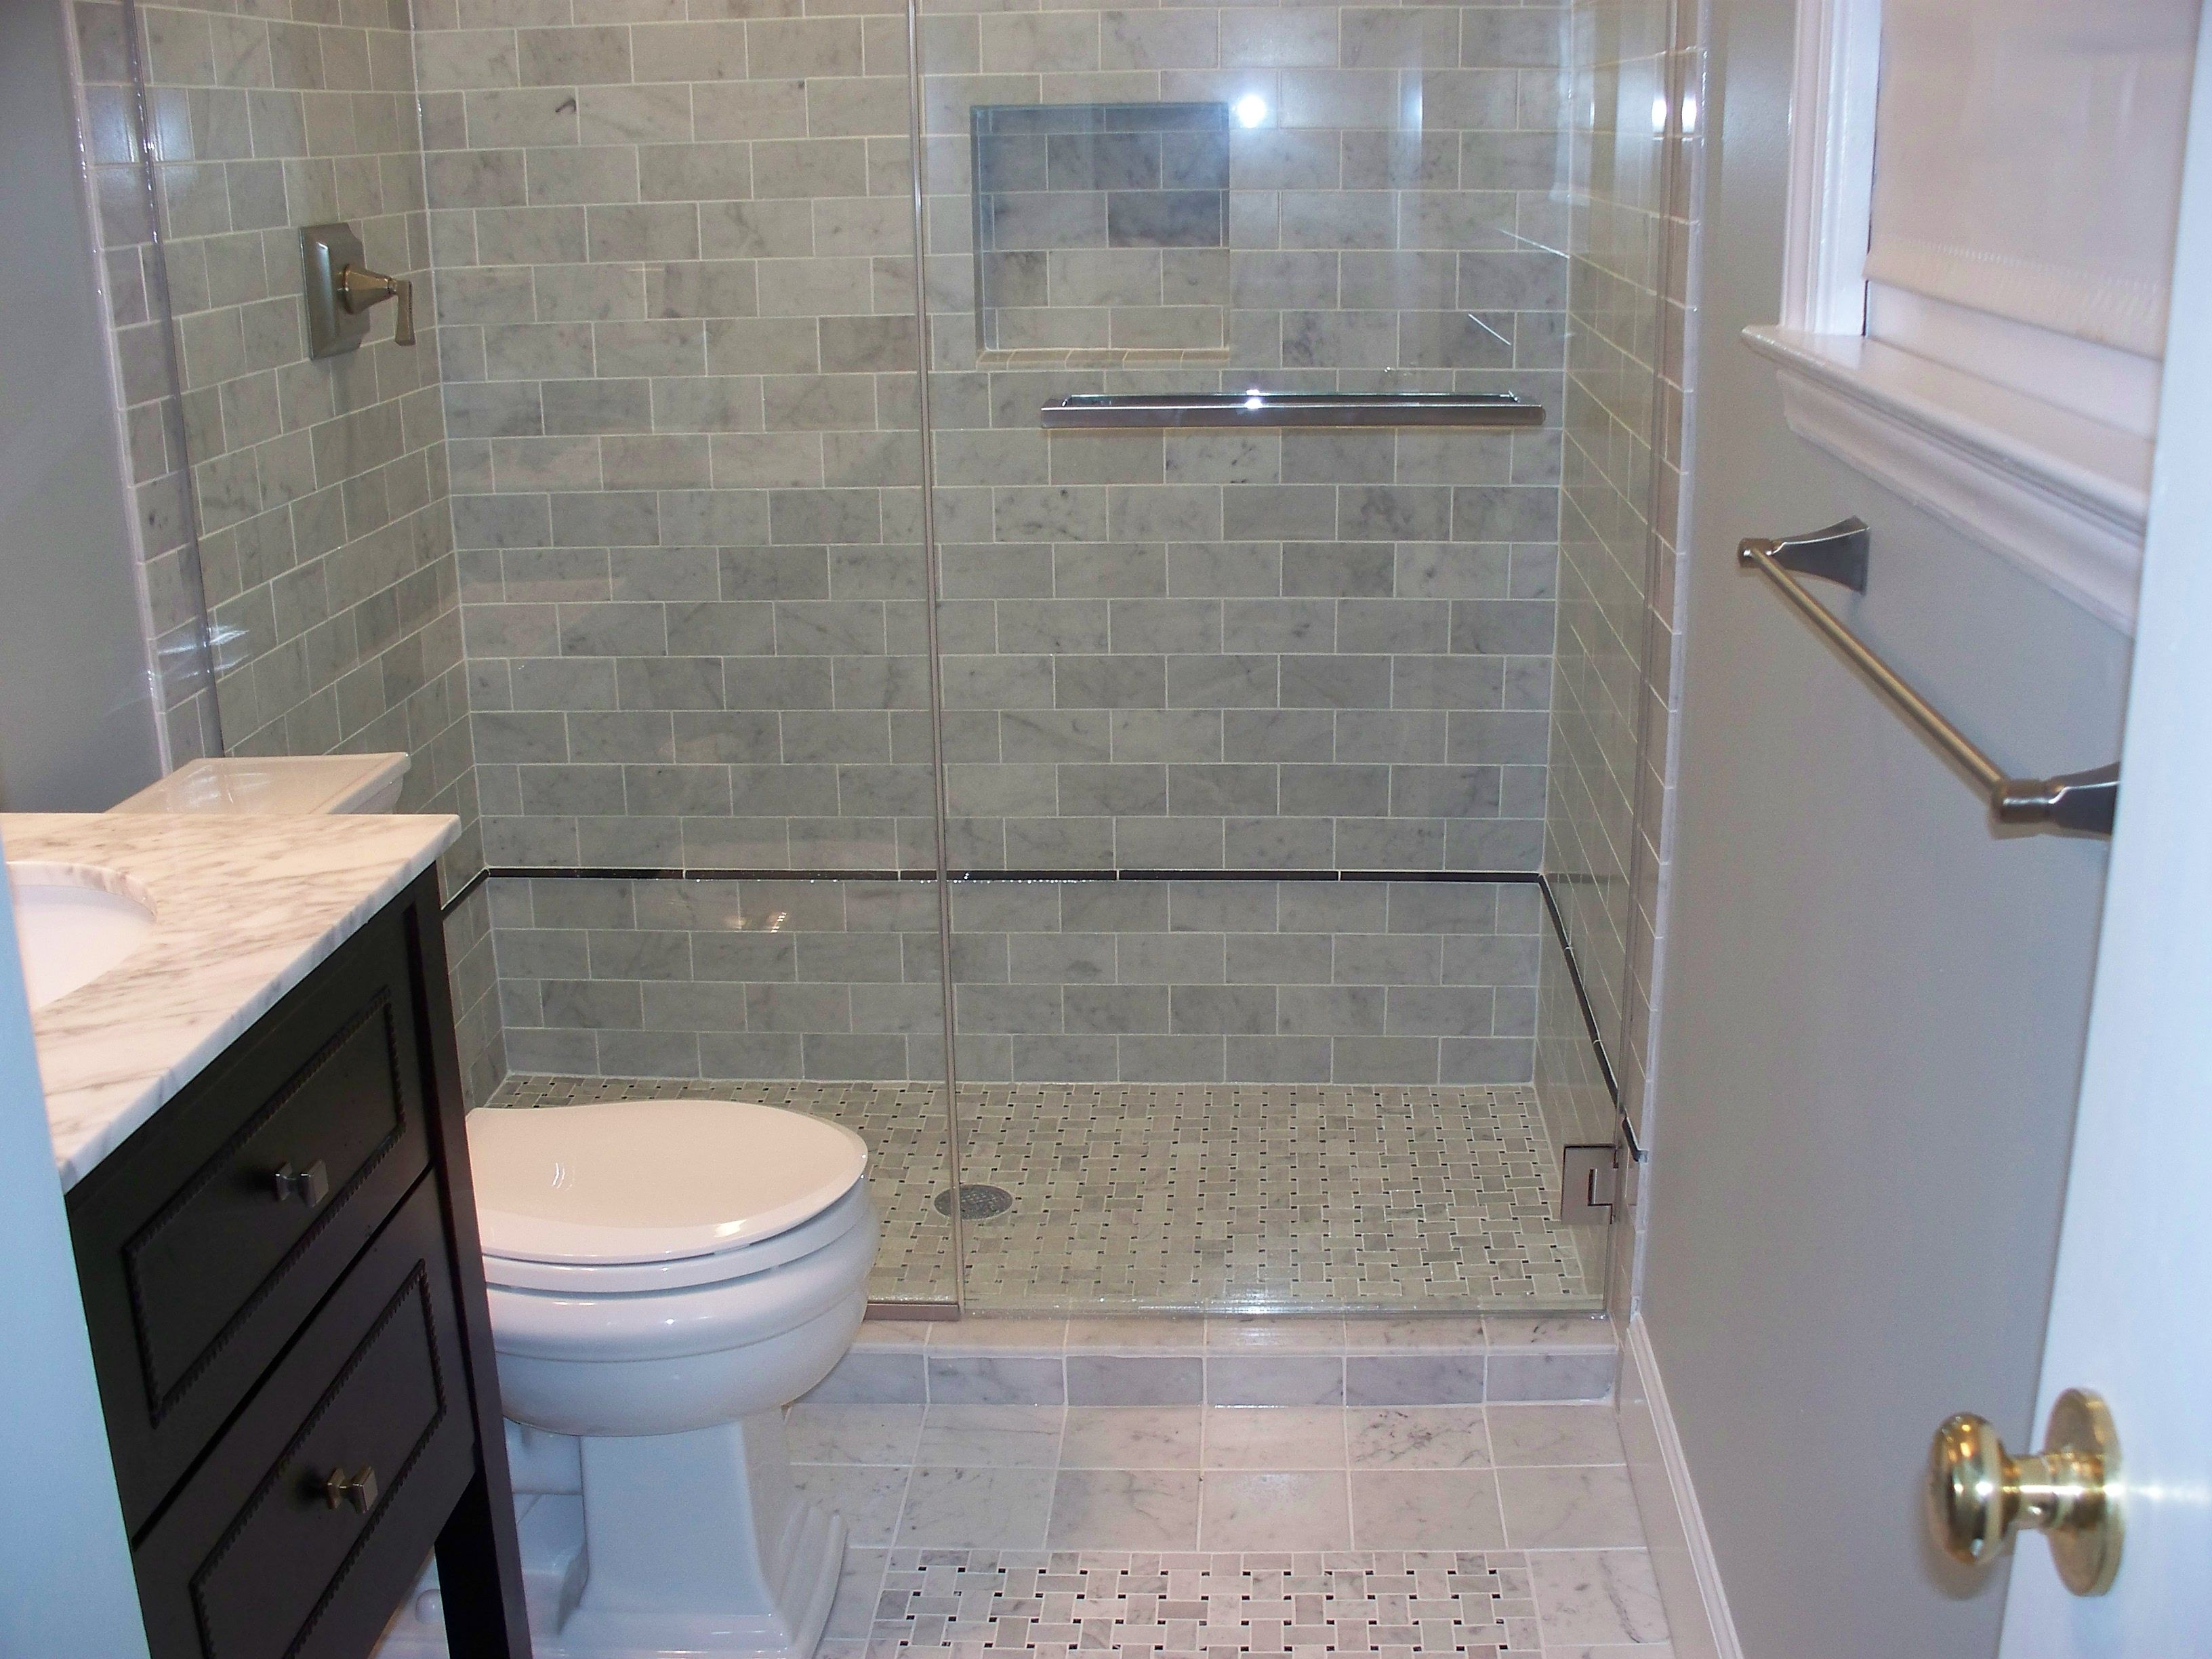 Smaller Master Bathroom Remodel Using Marble Subway Tiles Custom Tiled Shower W Small Space Bathroom Design Small Bathroom With Shower Small Bathroom Remodel